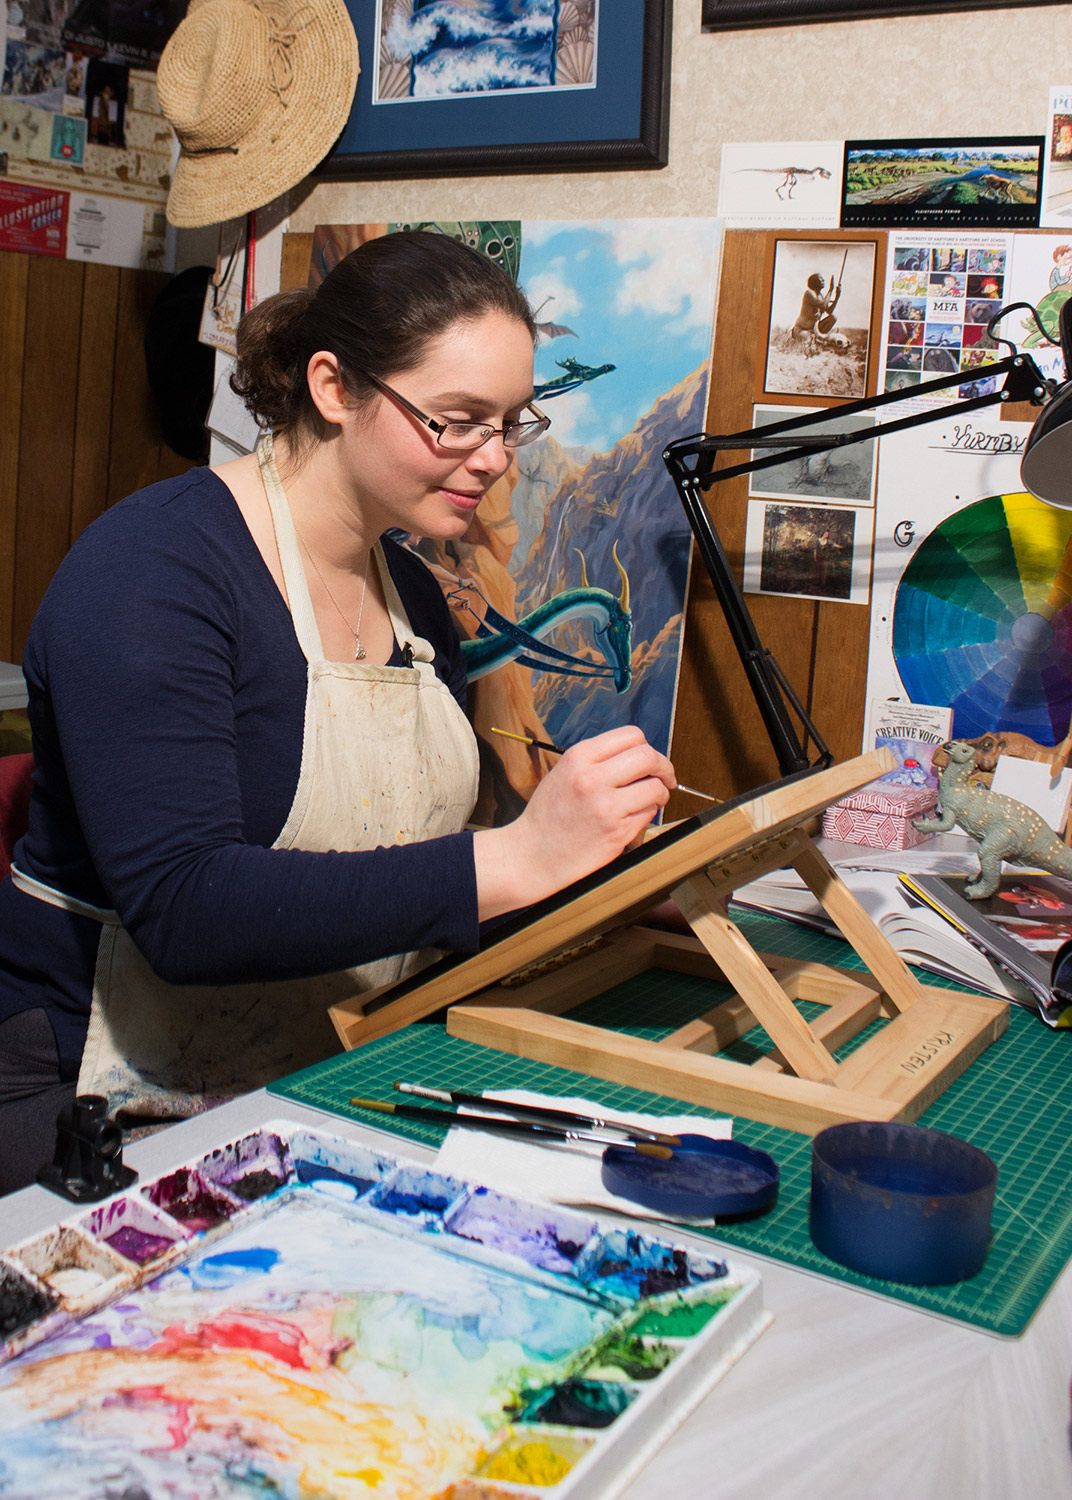 Kristen Girard watercolor painting in her art studio.  Would you like to know more about how the art comes to life?  Click here  to raise your hand for the adventure of creating dreams.  Photo © Kristen Girard 2015 .